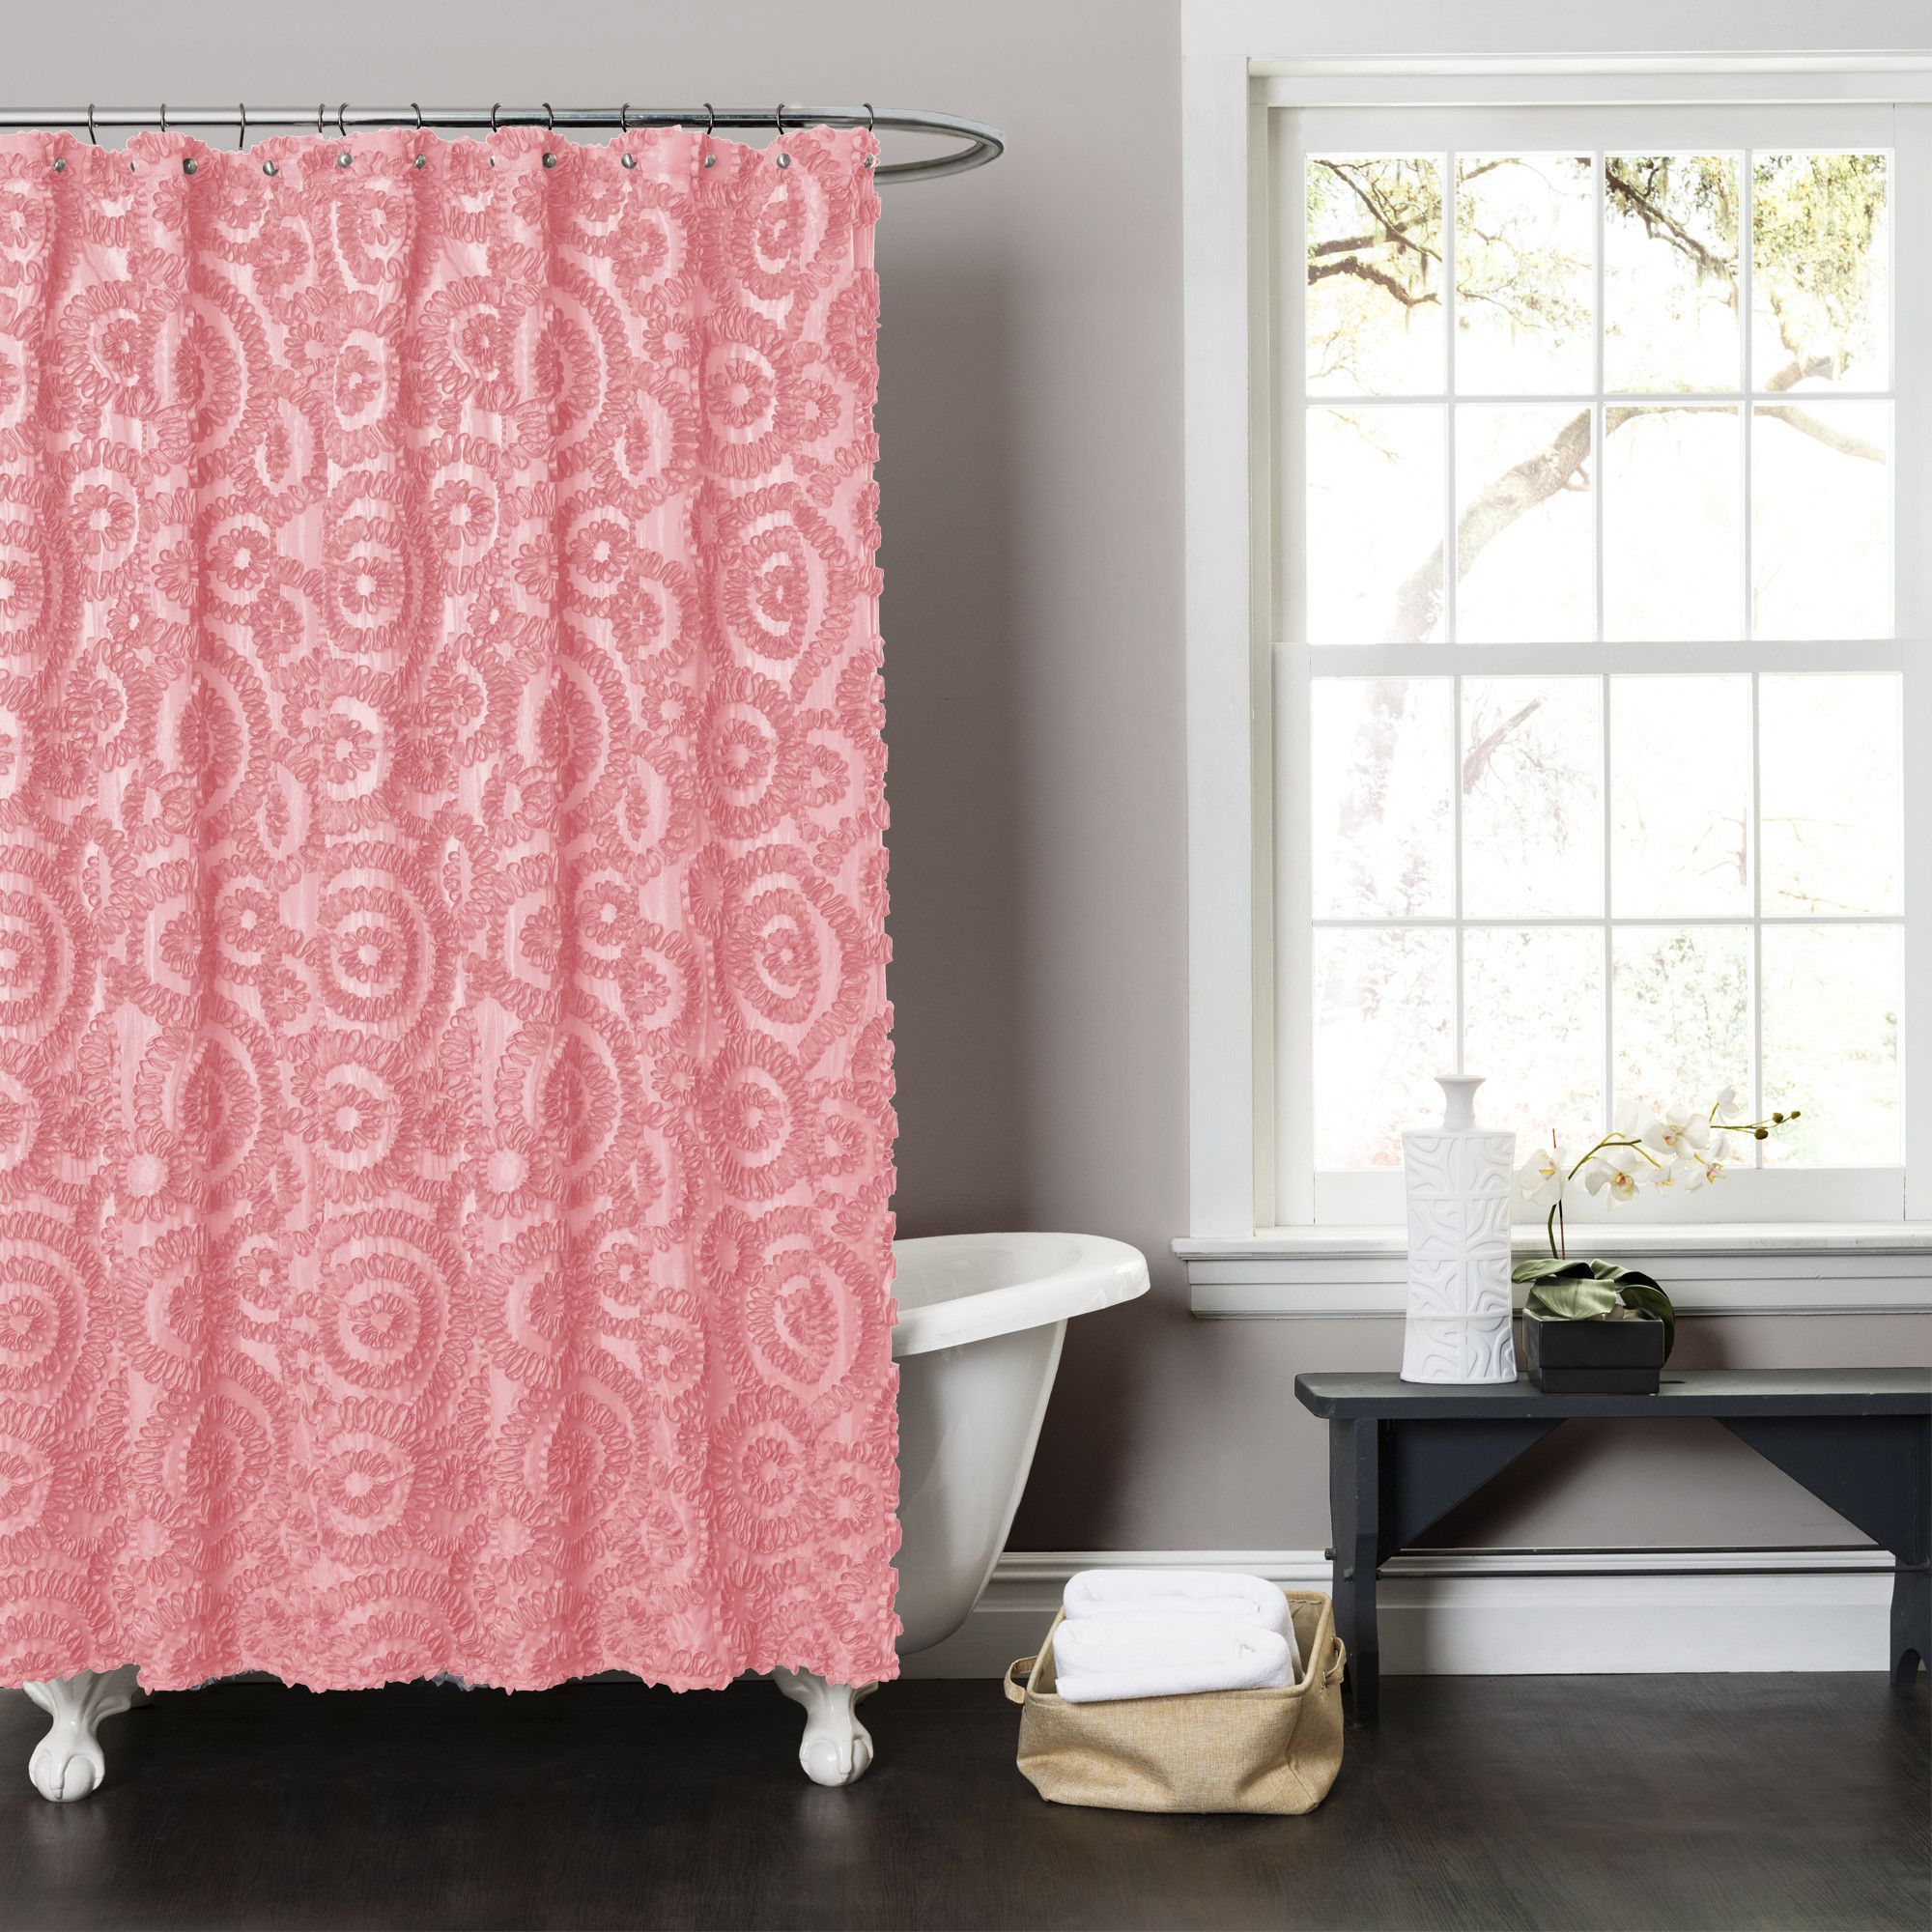 Stella shower curtain drapes and curtains pinterest